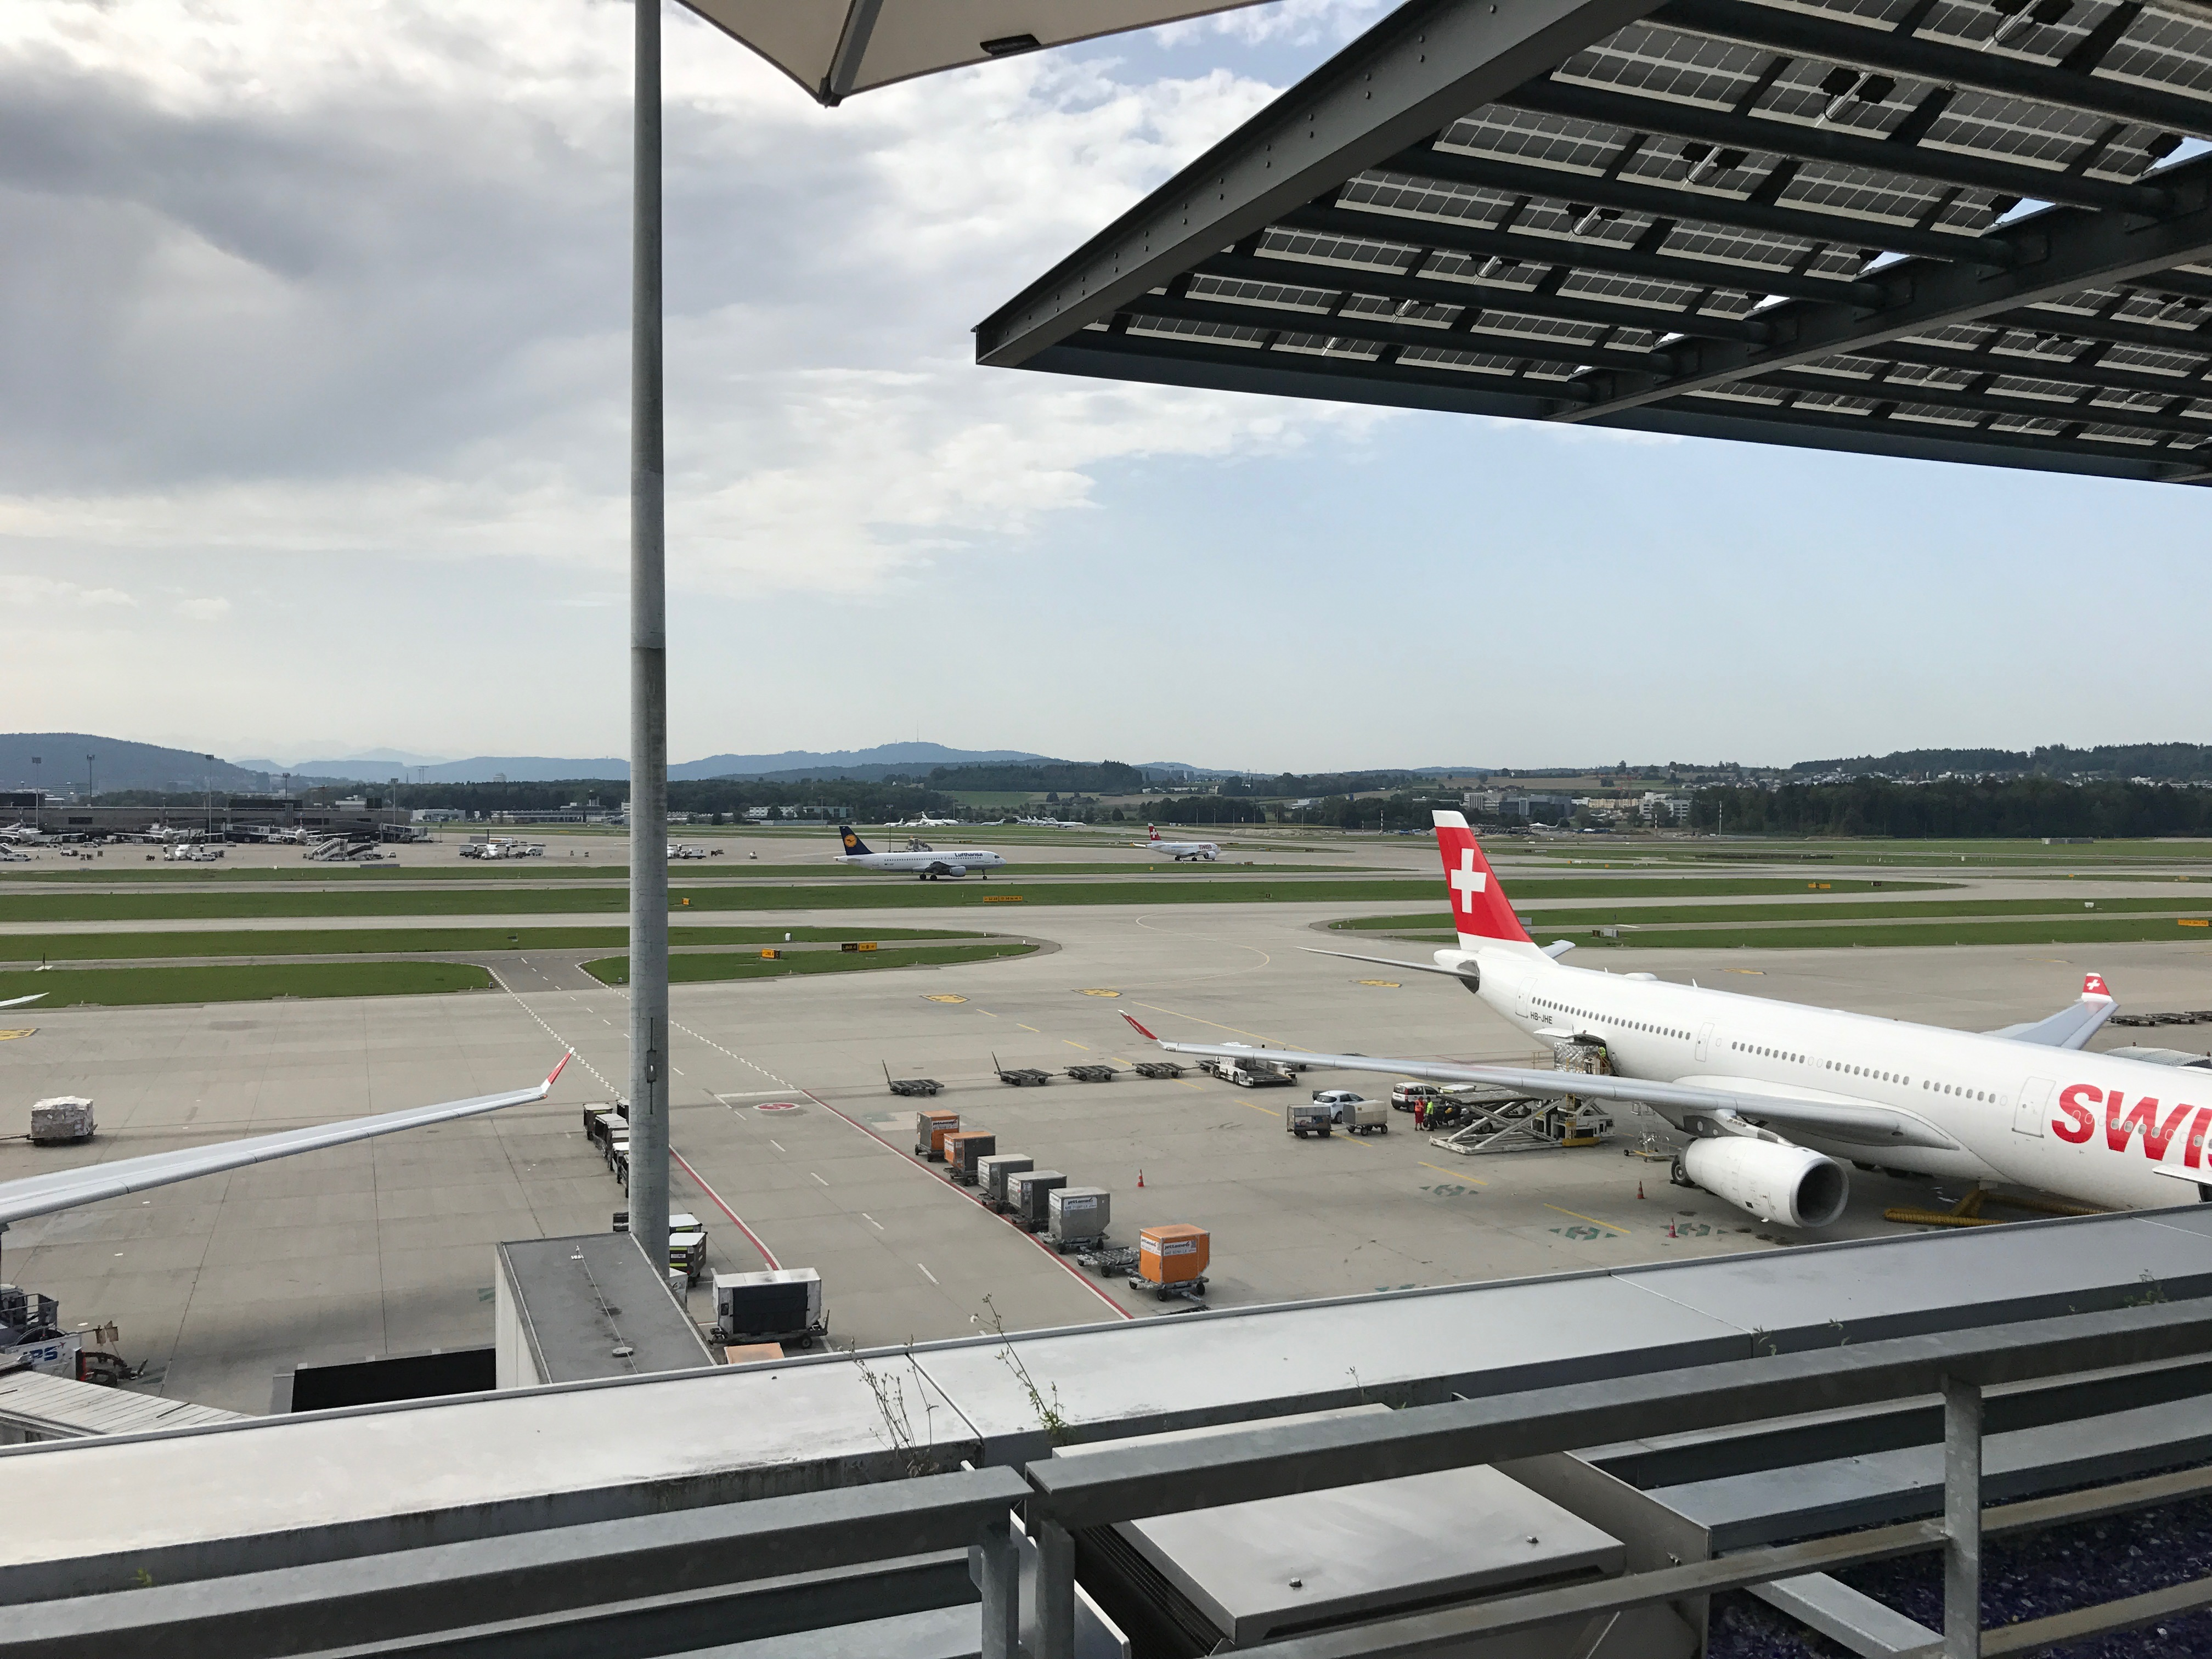 Looking at the active runway at Zurich from the Swiss First Class Lounge at Zurich terrace